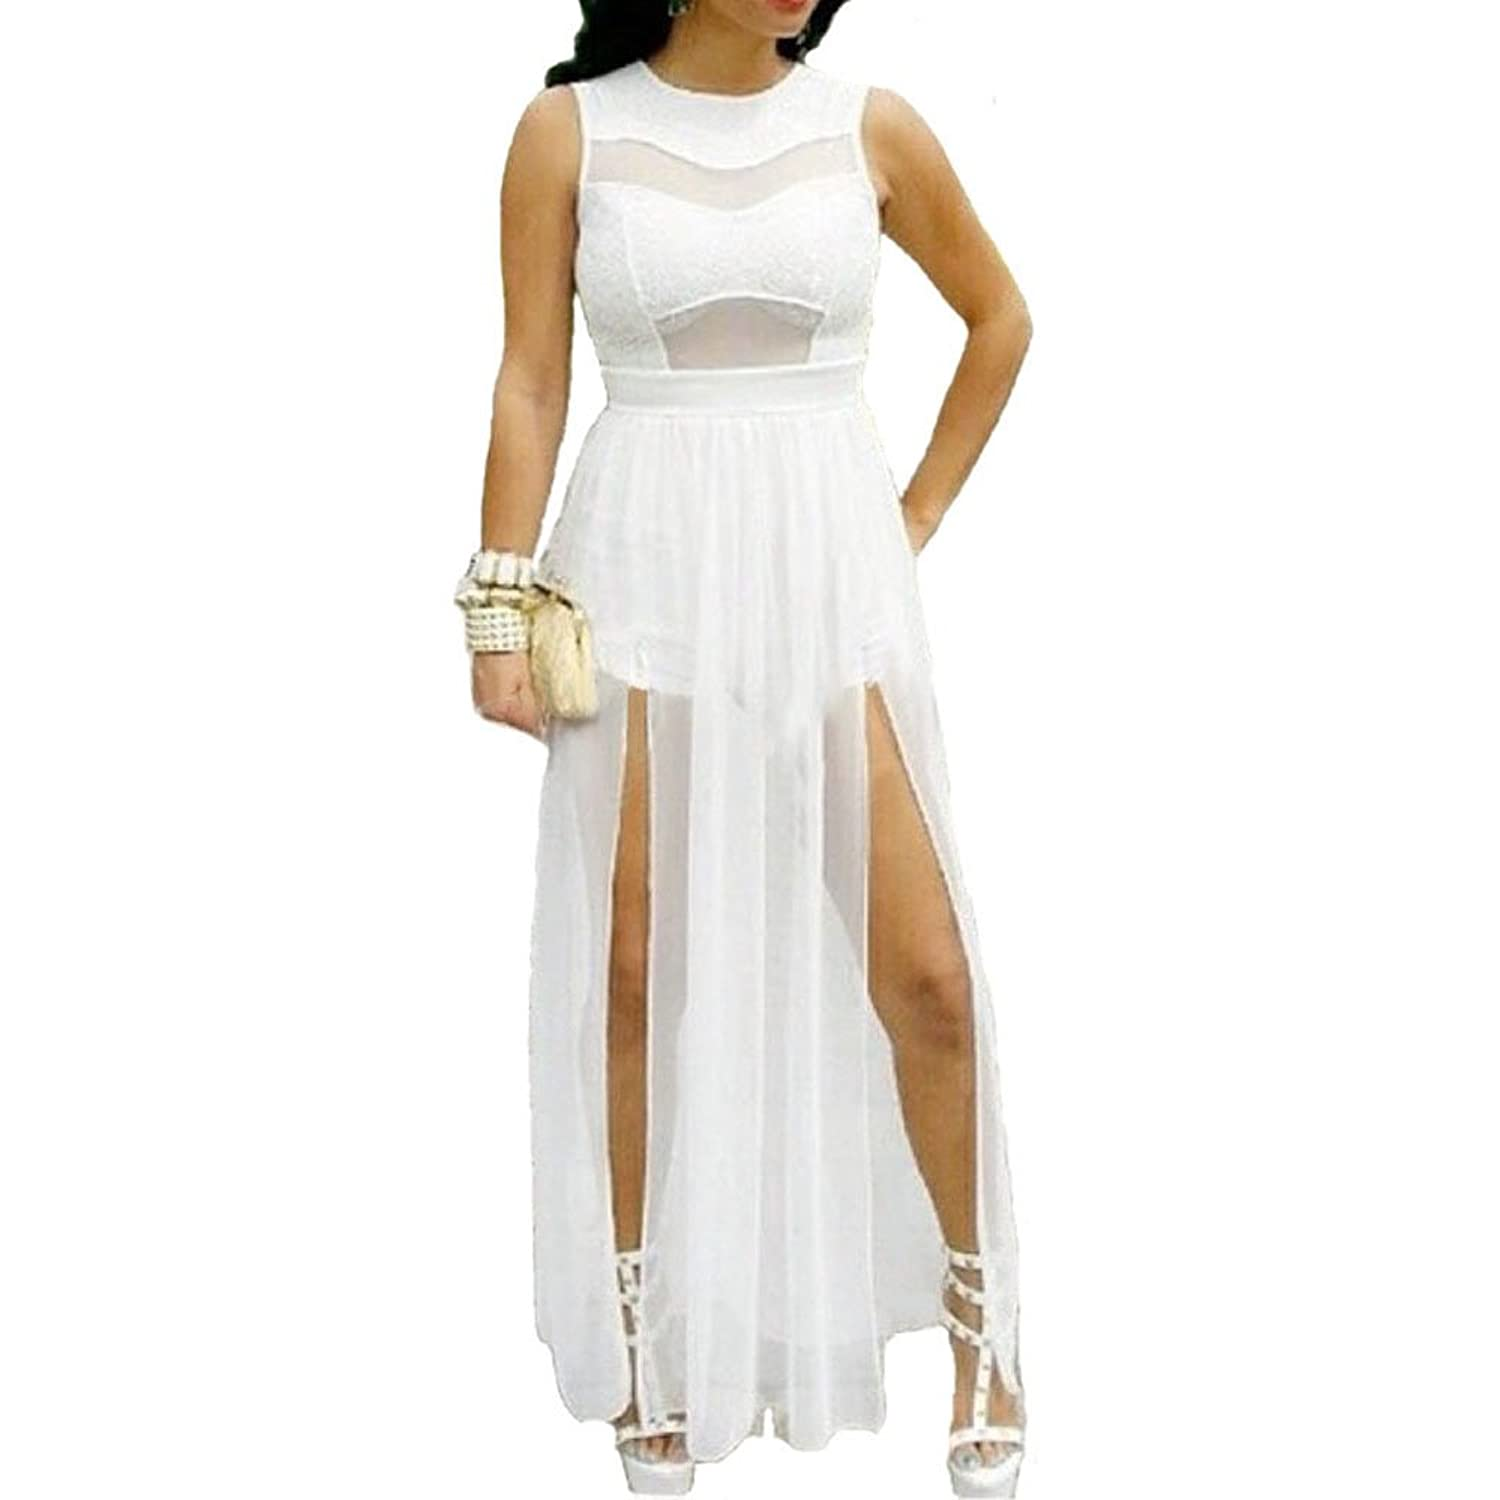 6630 - Plus Size Double Slits Lace Chiffon Jumpsuit Maxi Dress White